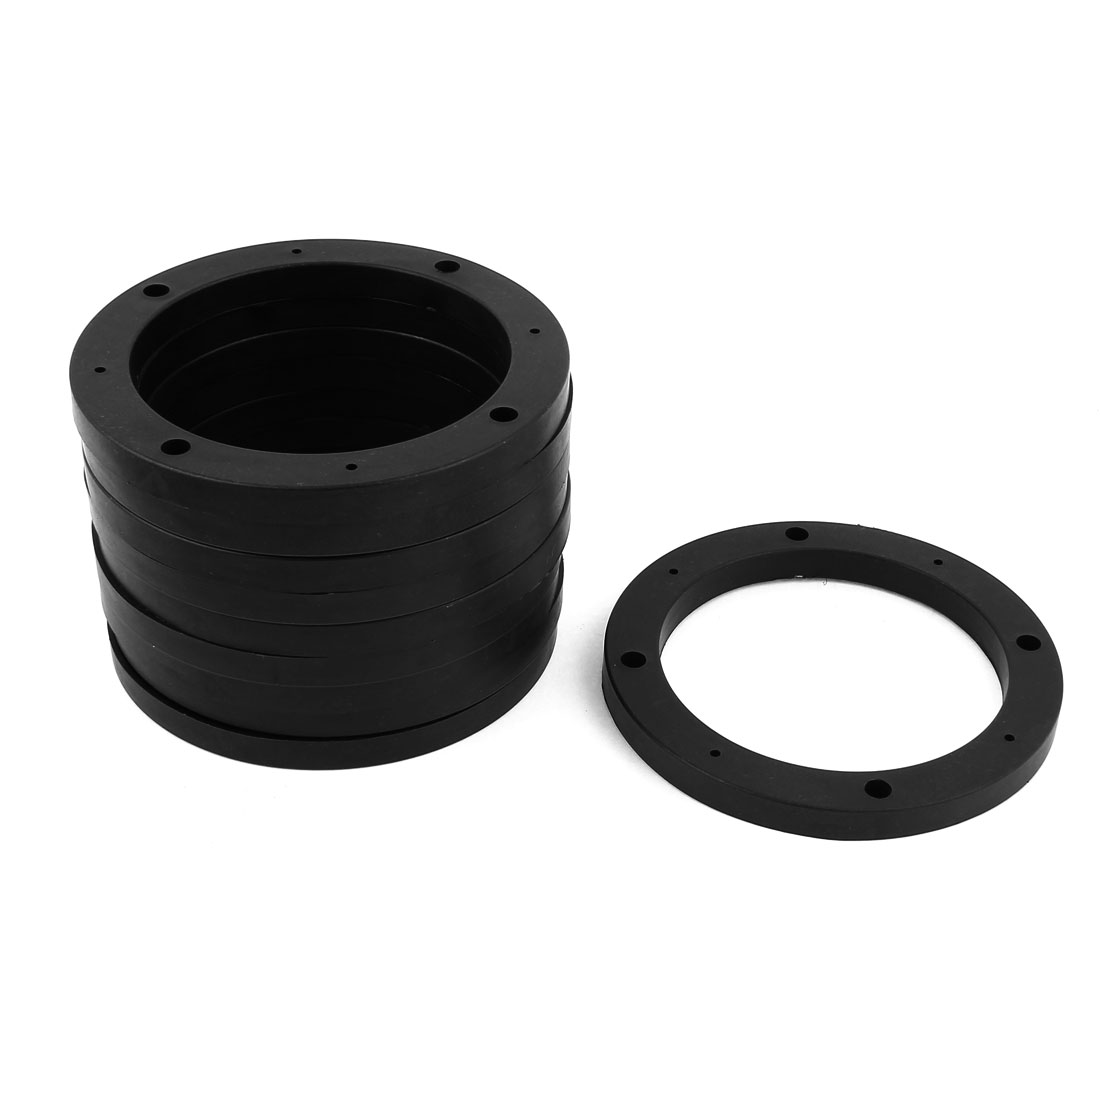 "Plastic Car Auto 5"" Inner Dia Speaker Spacers Mat 10Pcs Black"